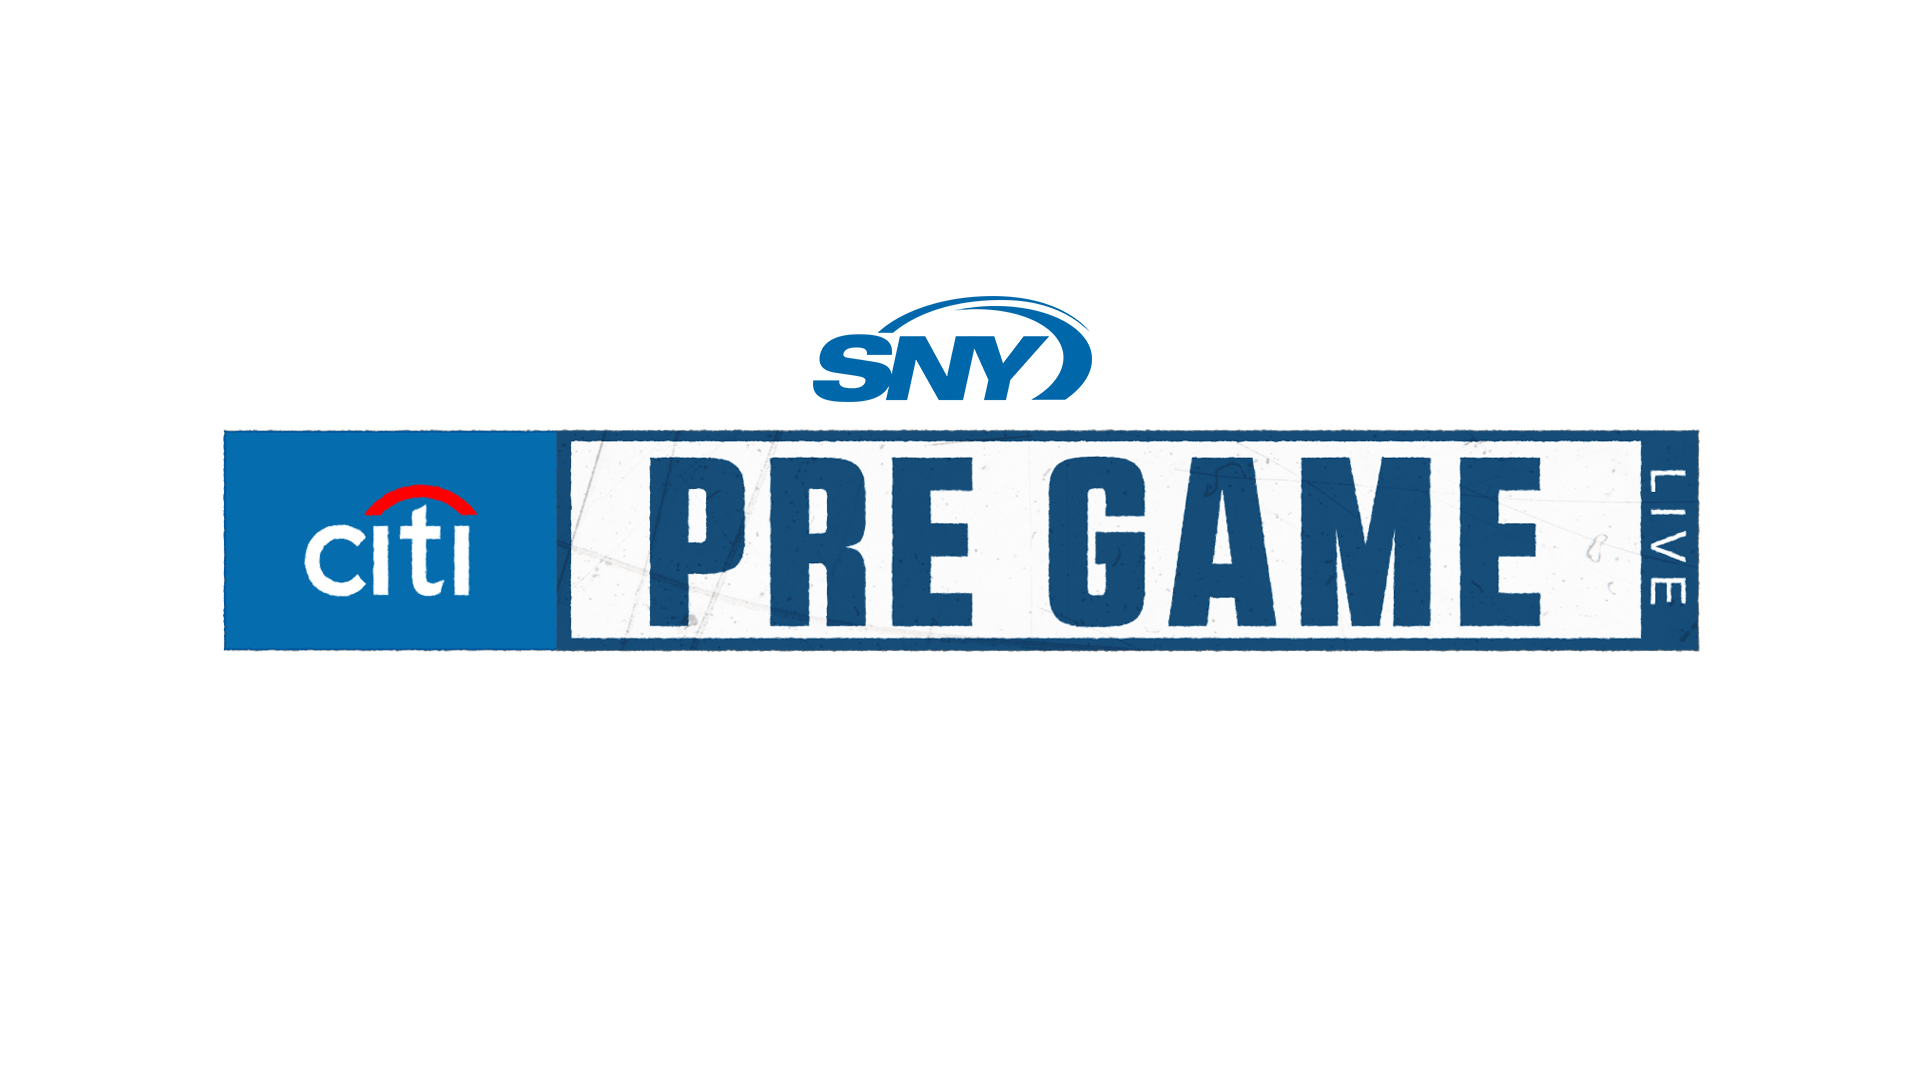 Mets Pre Game Live Show